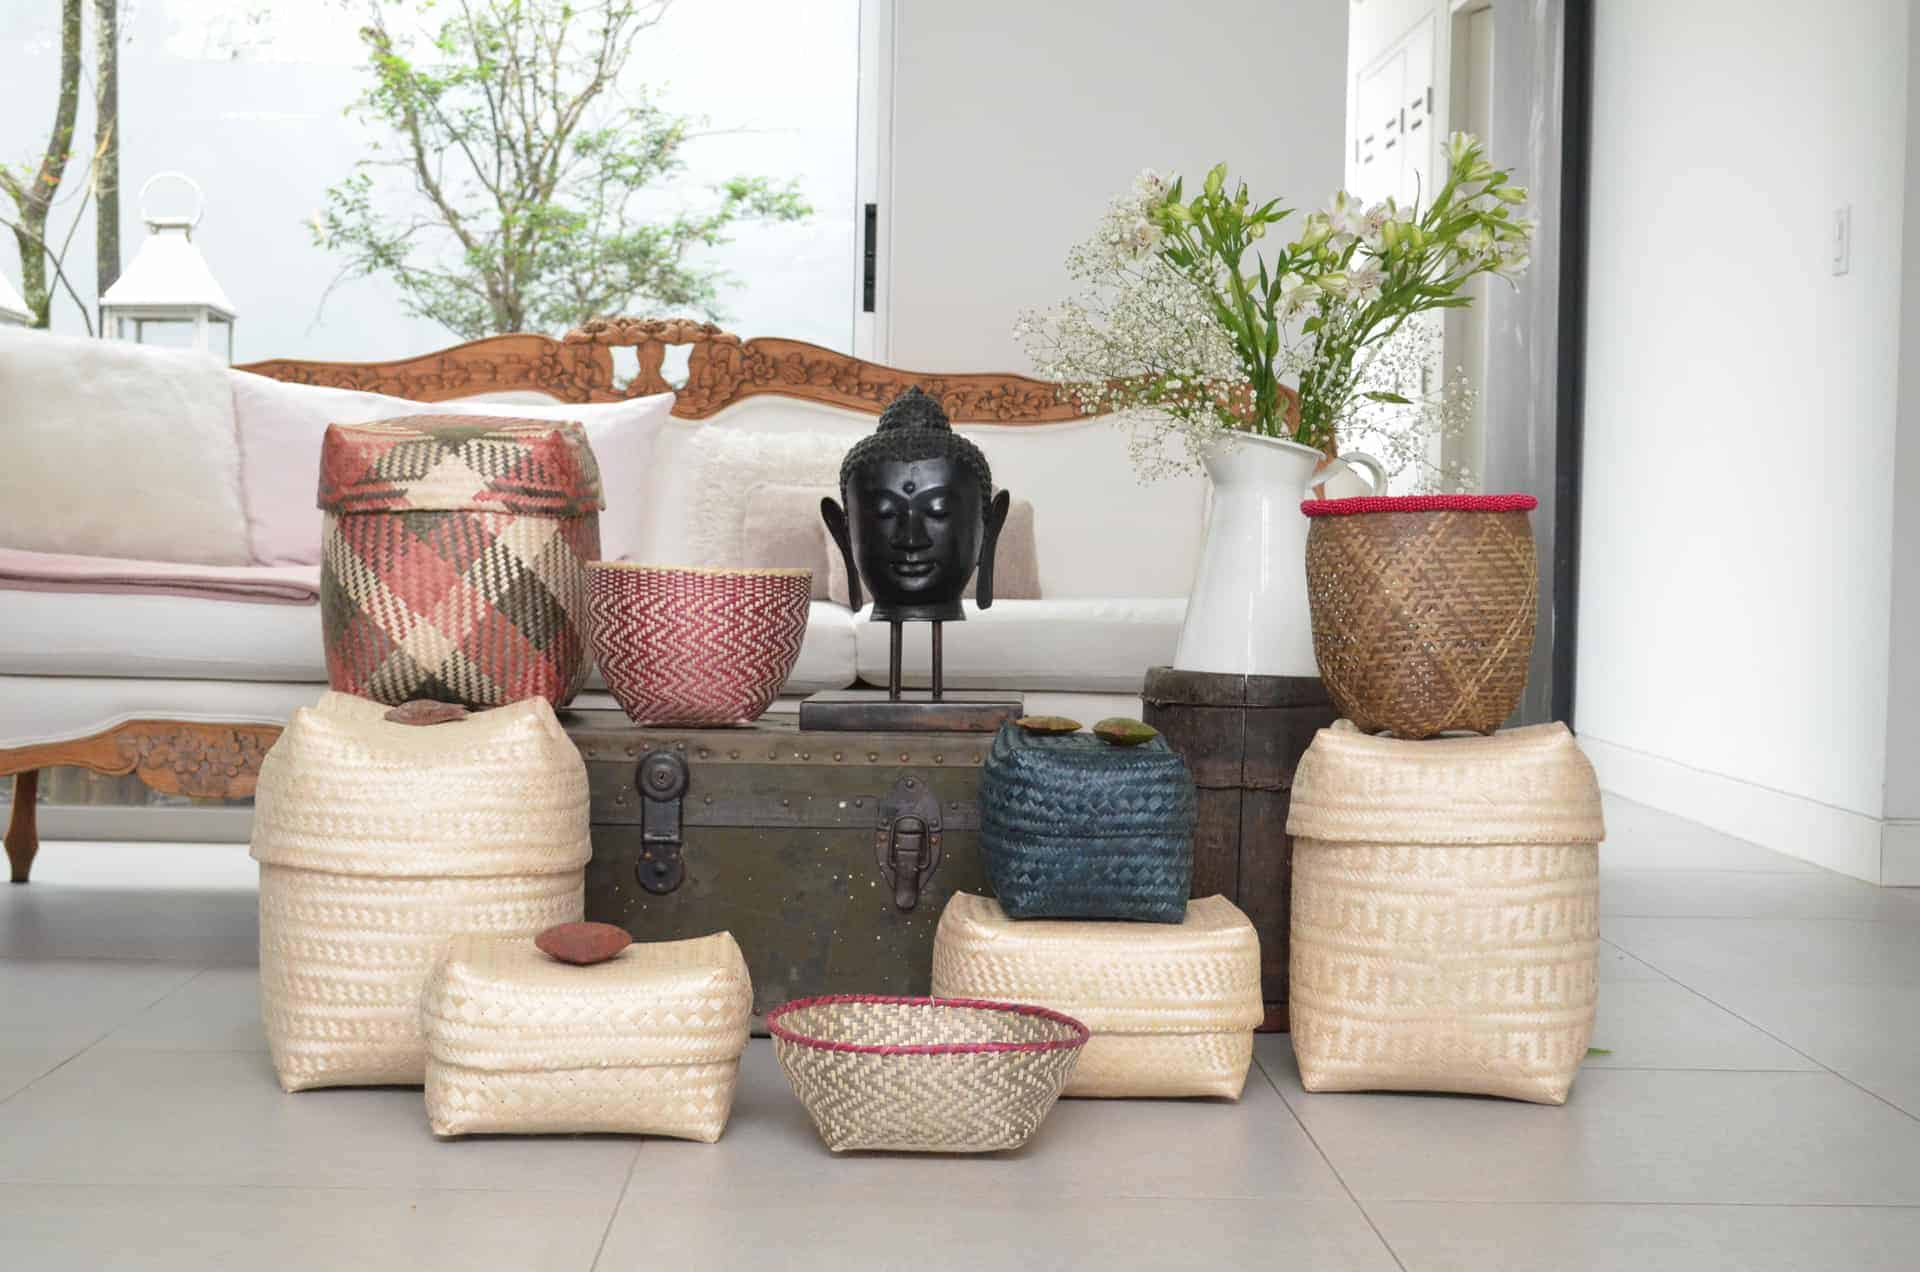 Paja Tetera and Iraca Baskets